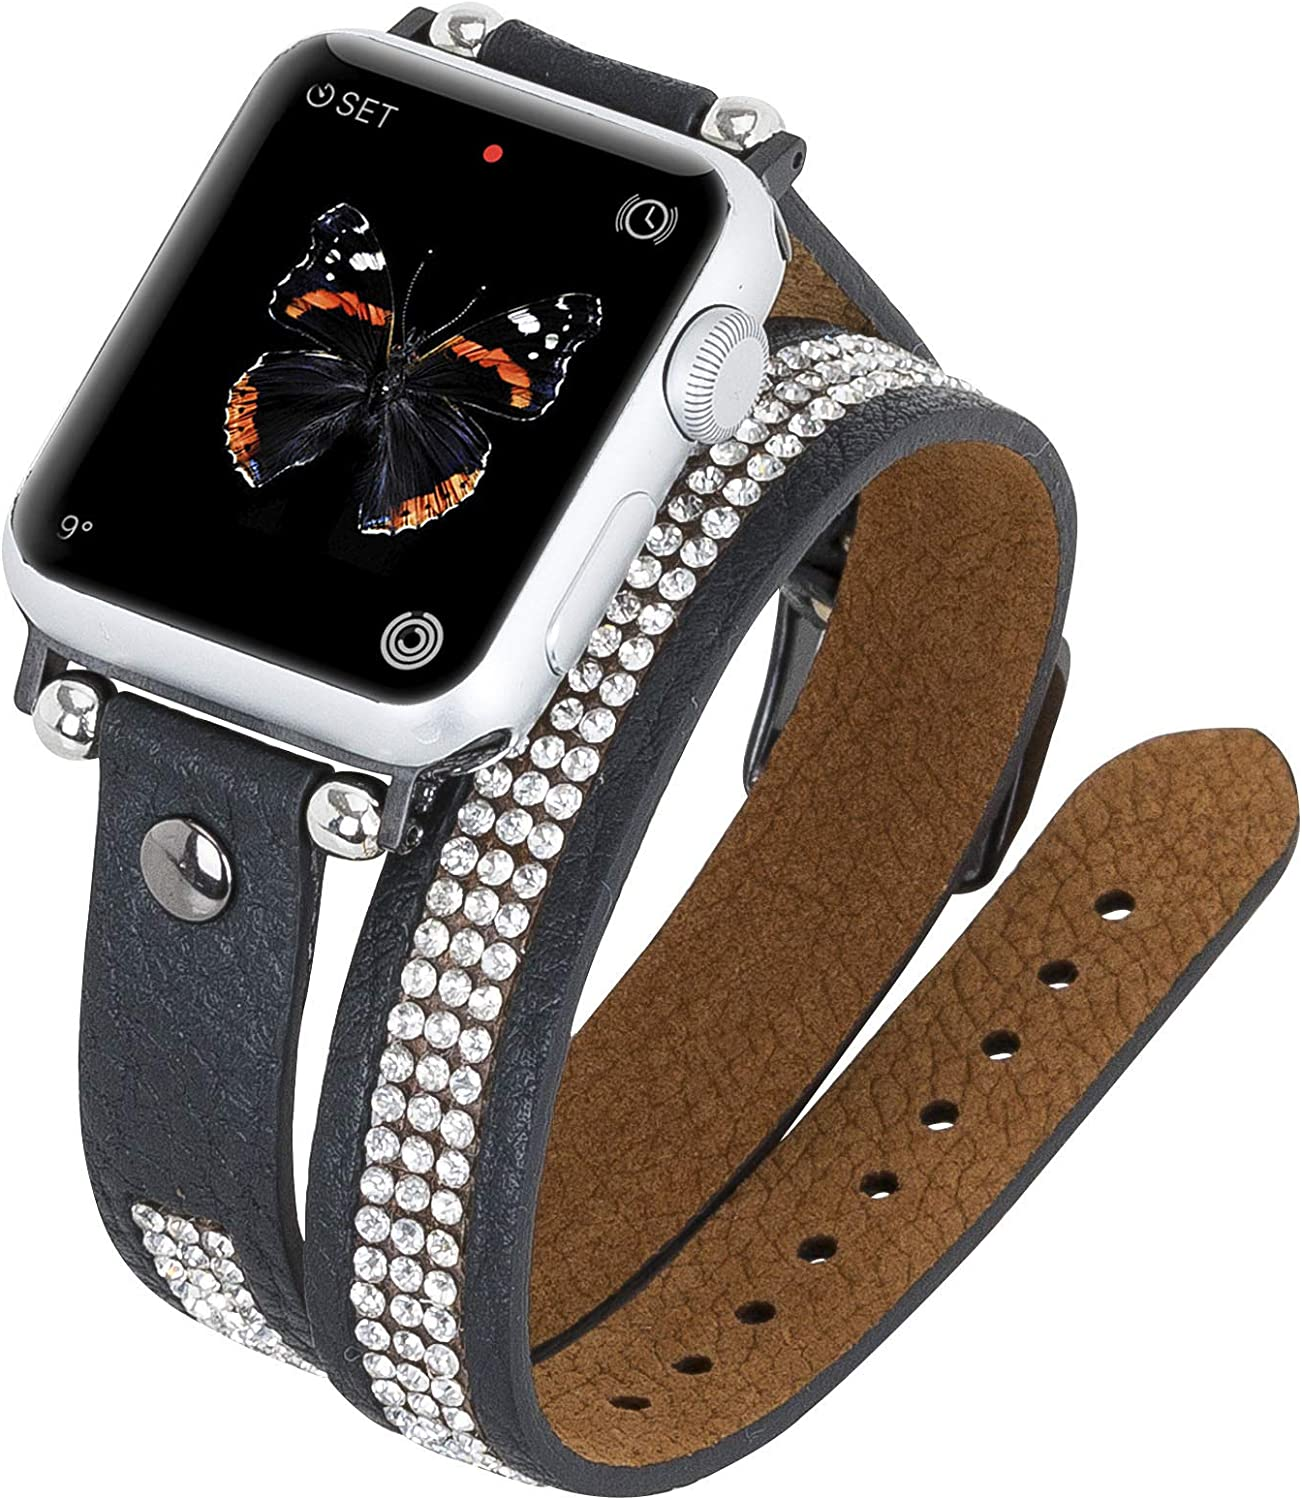 Venito Livorno Double Wrap Leather Slim Watch Band with Rhinestones Compatible w/Apple Watch Series 1, 2, 3, 4, 5, 6 with Stainless Steel Hardware (Black w/Black Connector & Clasp, 42mm-44mm)